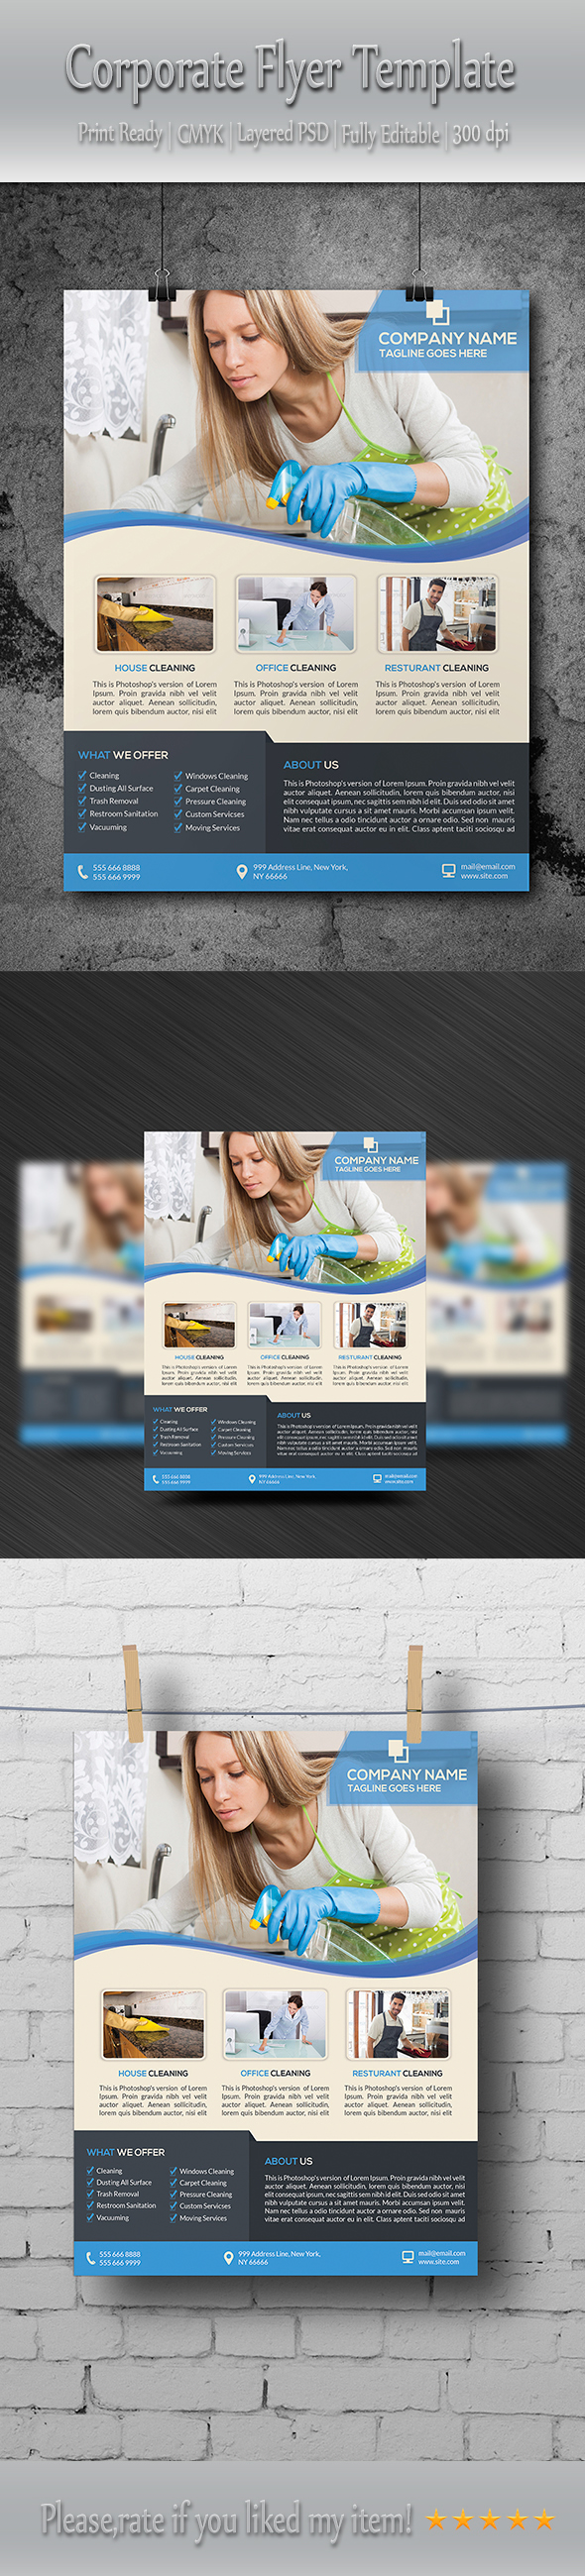 house cleaning service flyer template on behance buy